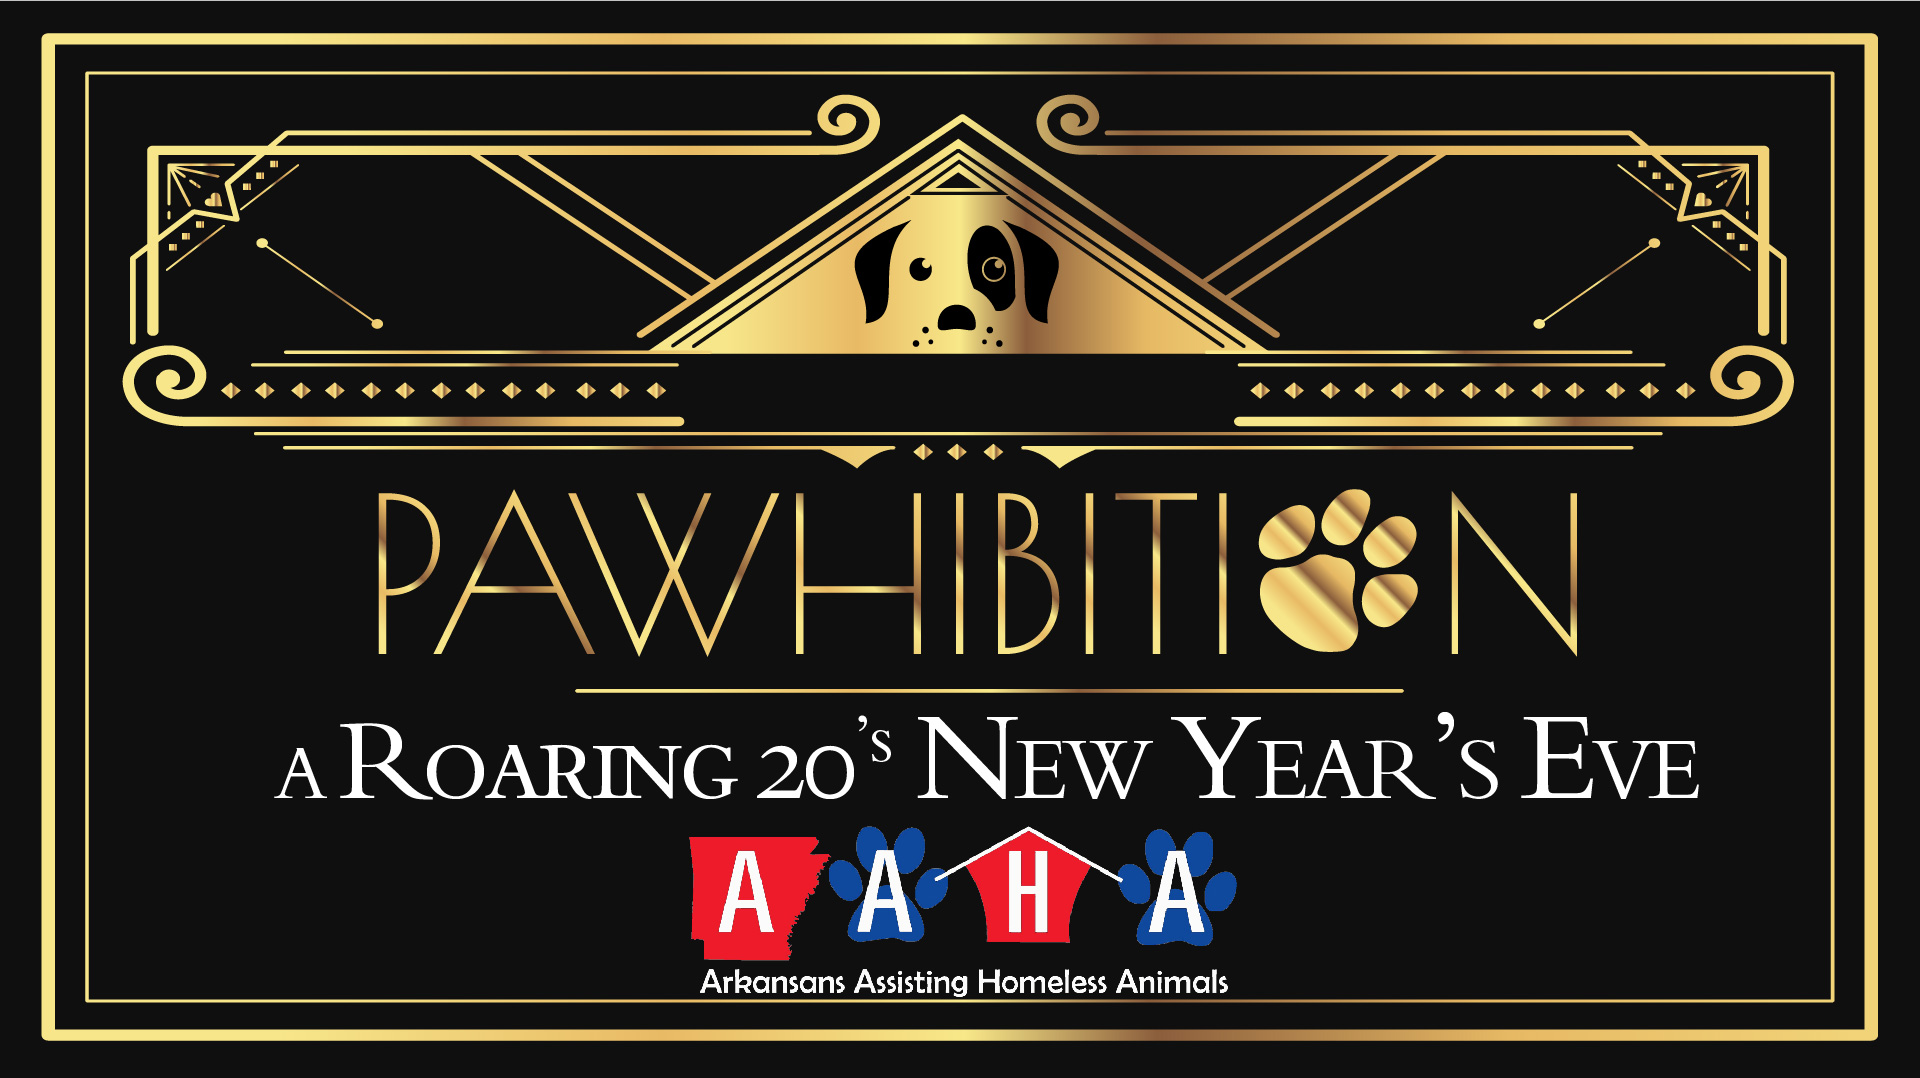 PAWHIBITION fb cover -final.png